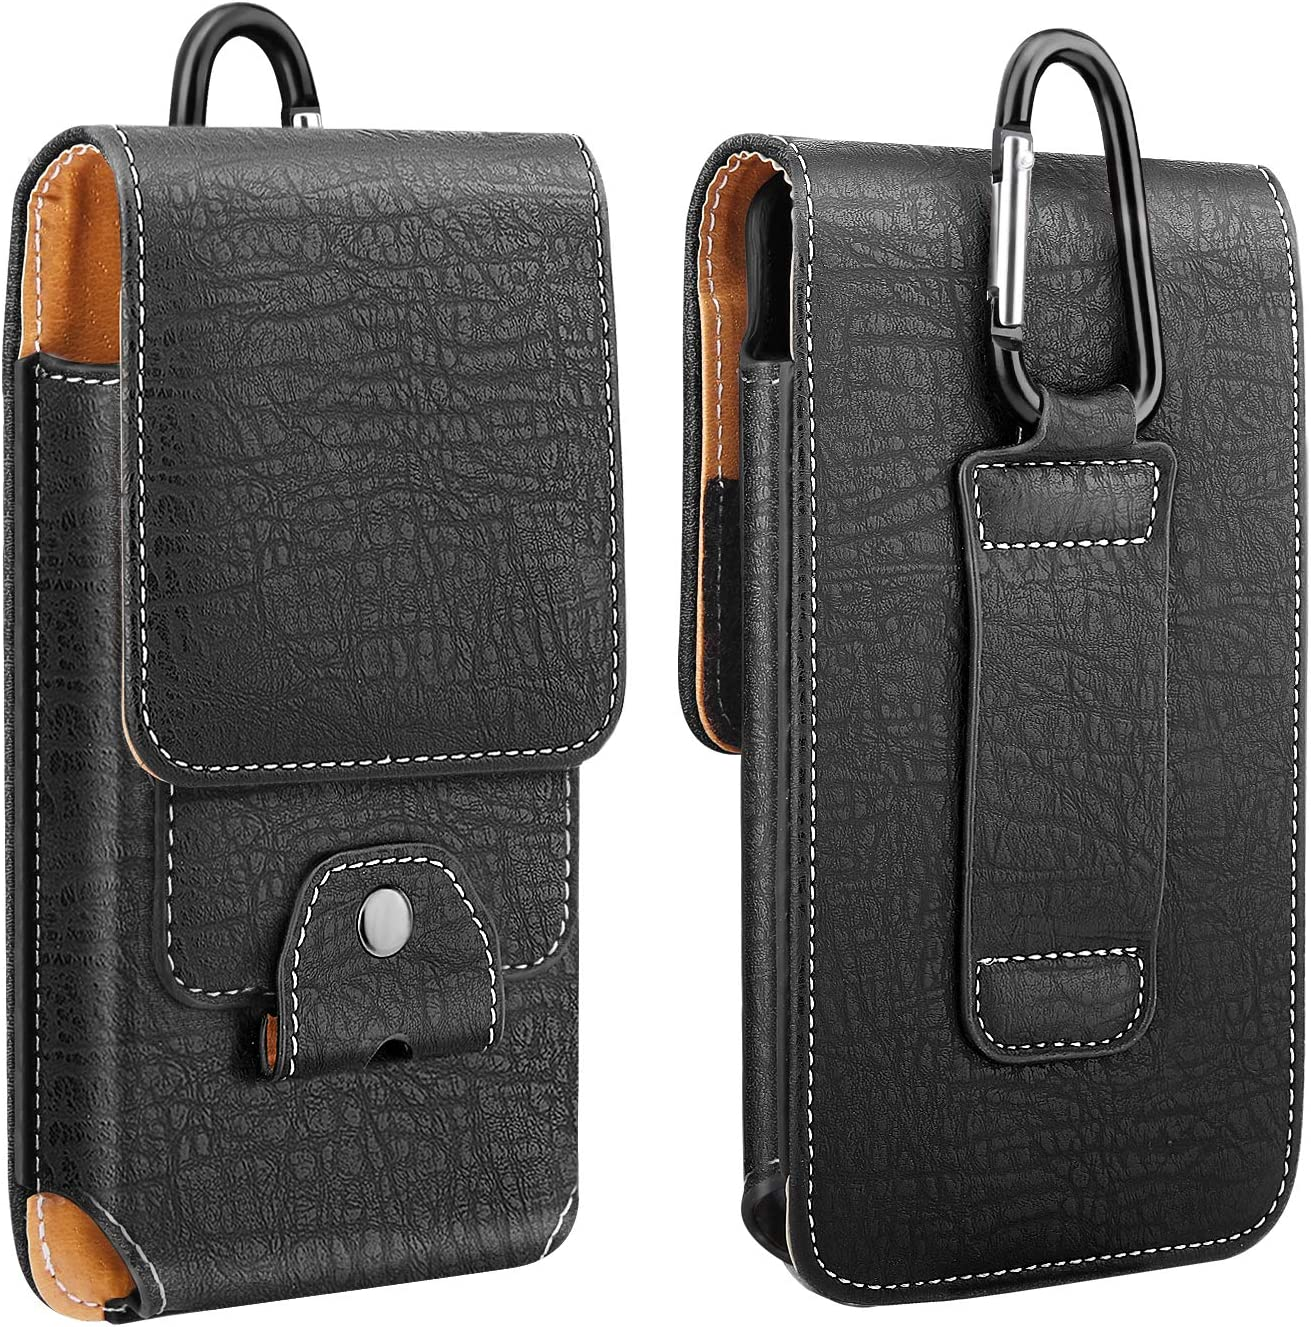 Samsung Galaxy Note 10//S10e//S10//S10 Plus iPhone 11 Pro//11//11 Pro Max//Xs Max//XR//Xs//X Black PU Leather Belt Loop Case Pouch Cover with Carabiner Card Slot Fit 6.5 Phone MoKo Phone Holster